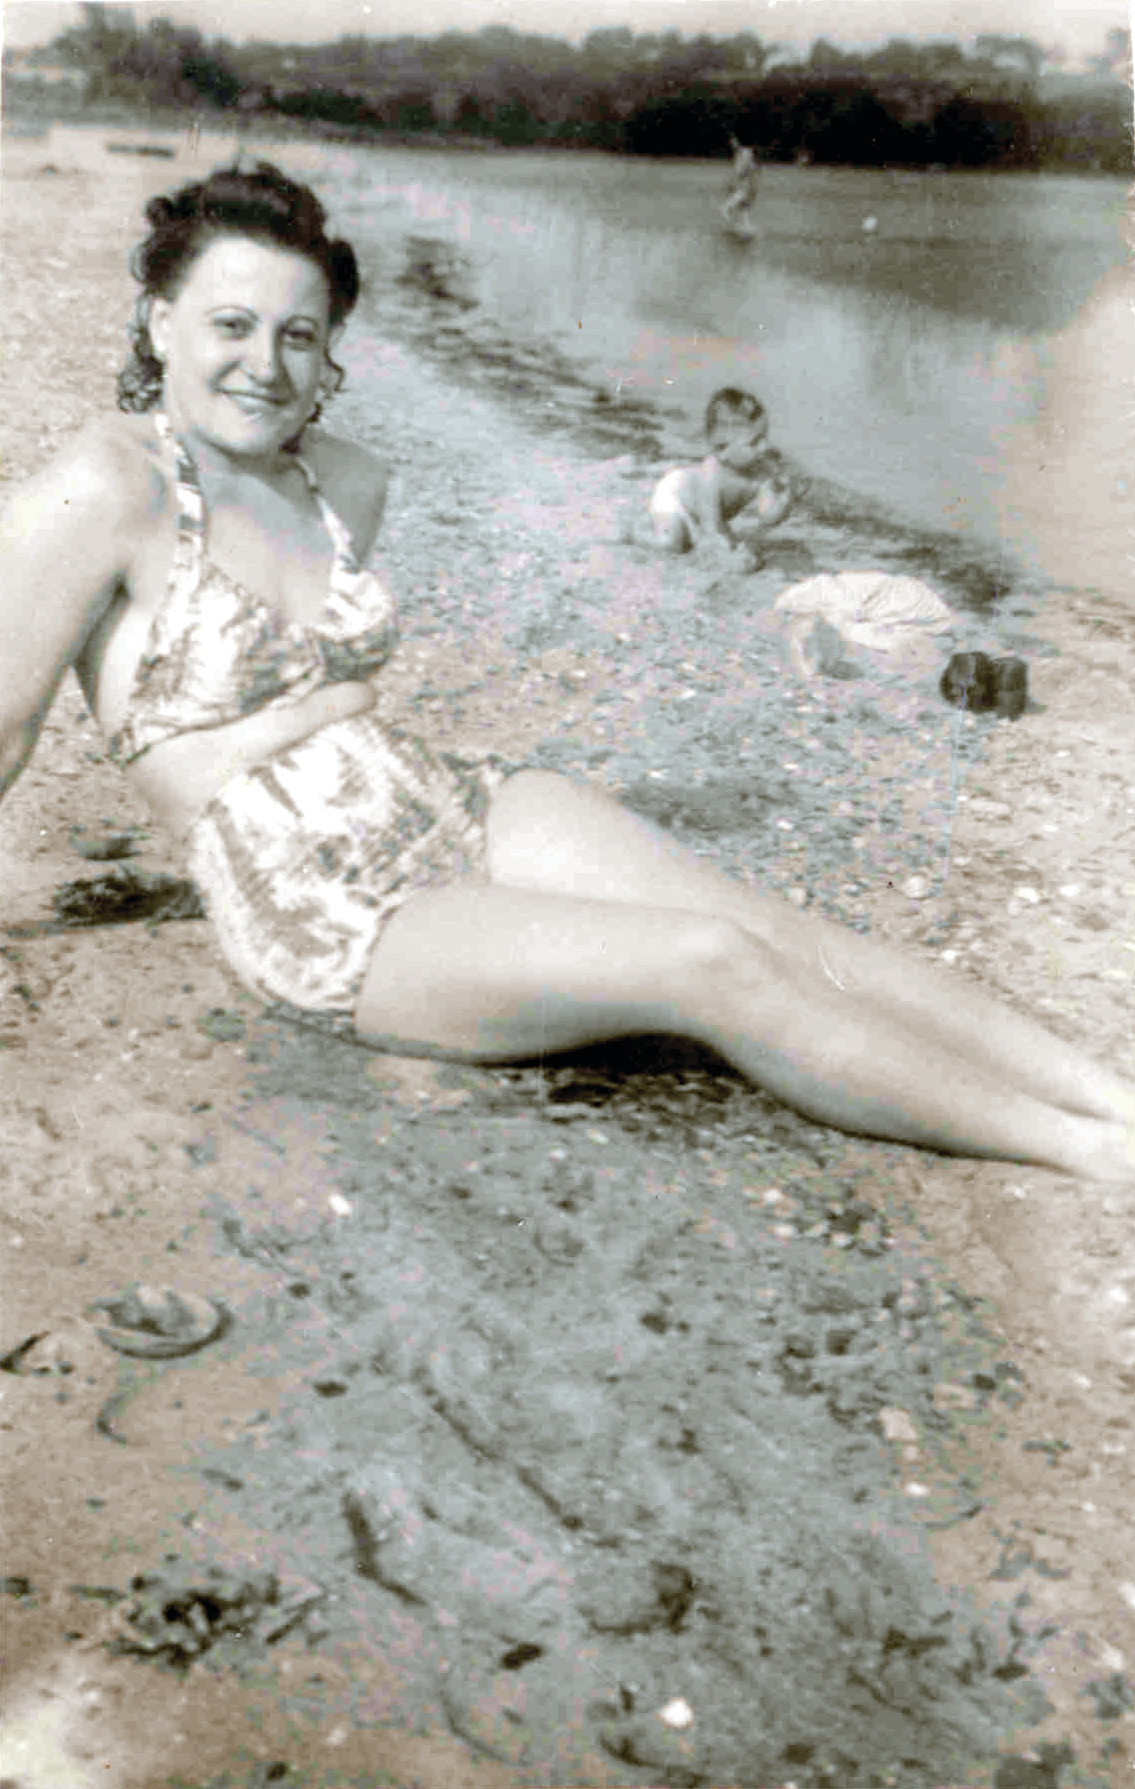 BEACH BABE: Agnes as pictured on the beach on August 23, 1942.